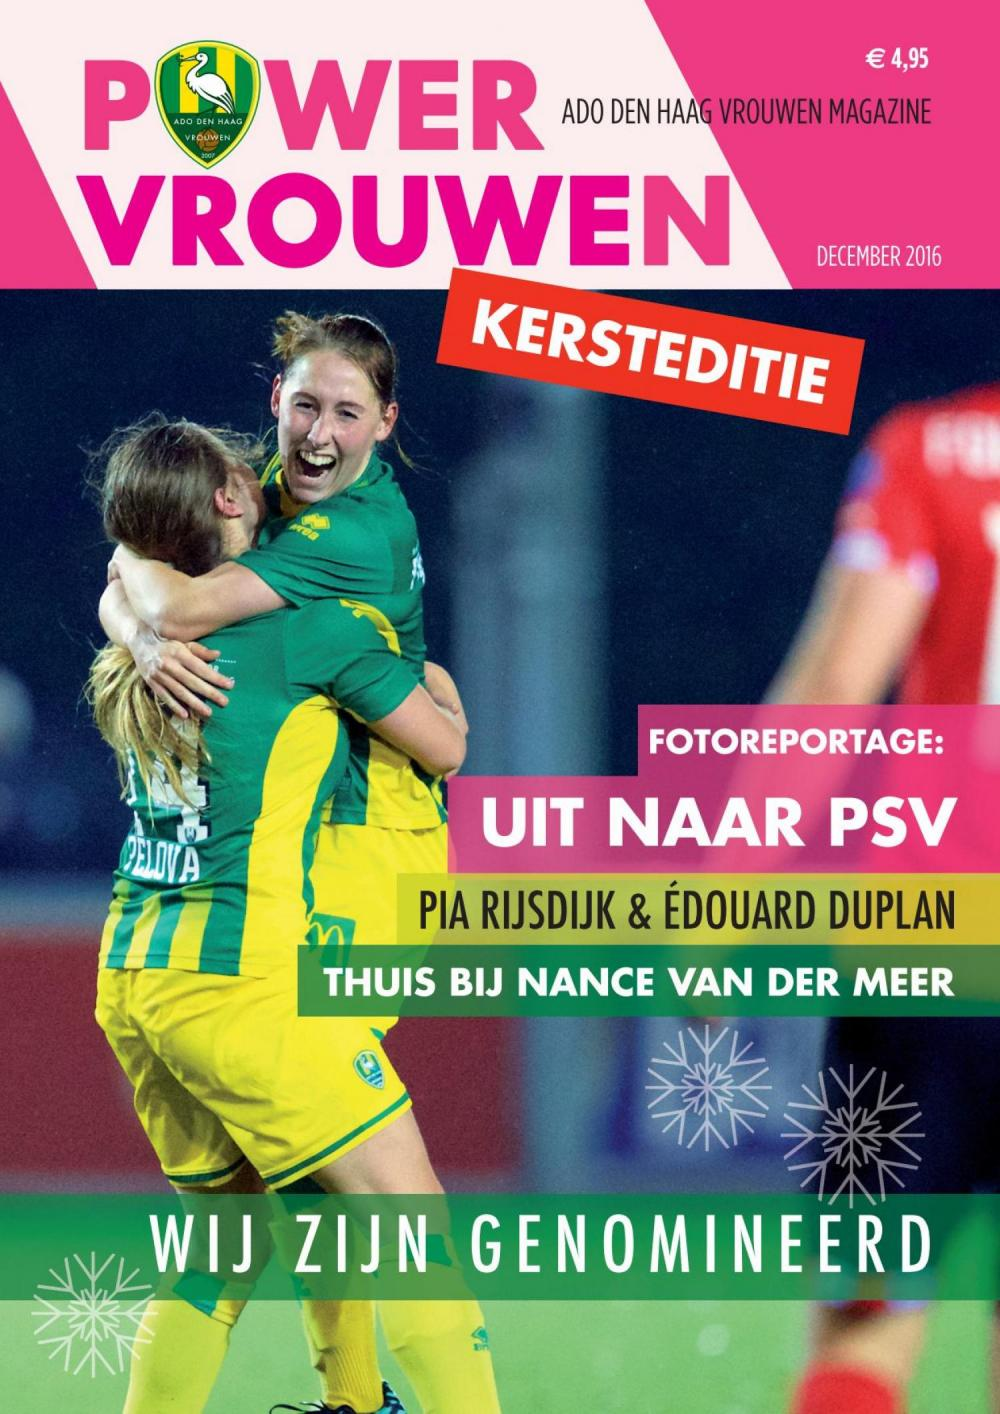 Powervrouwen Magazine december 2016